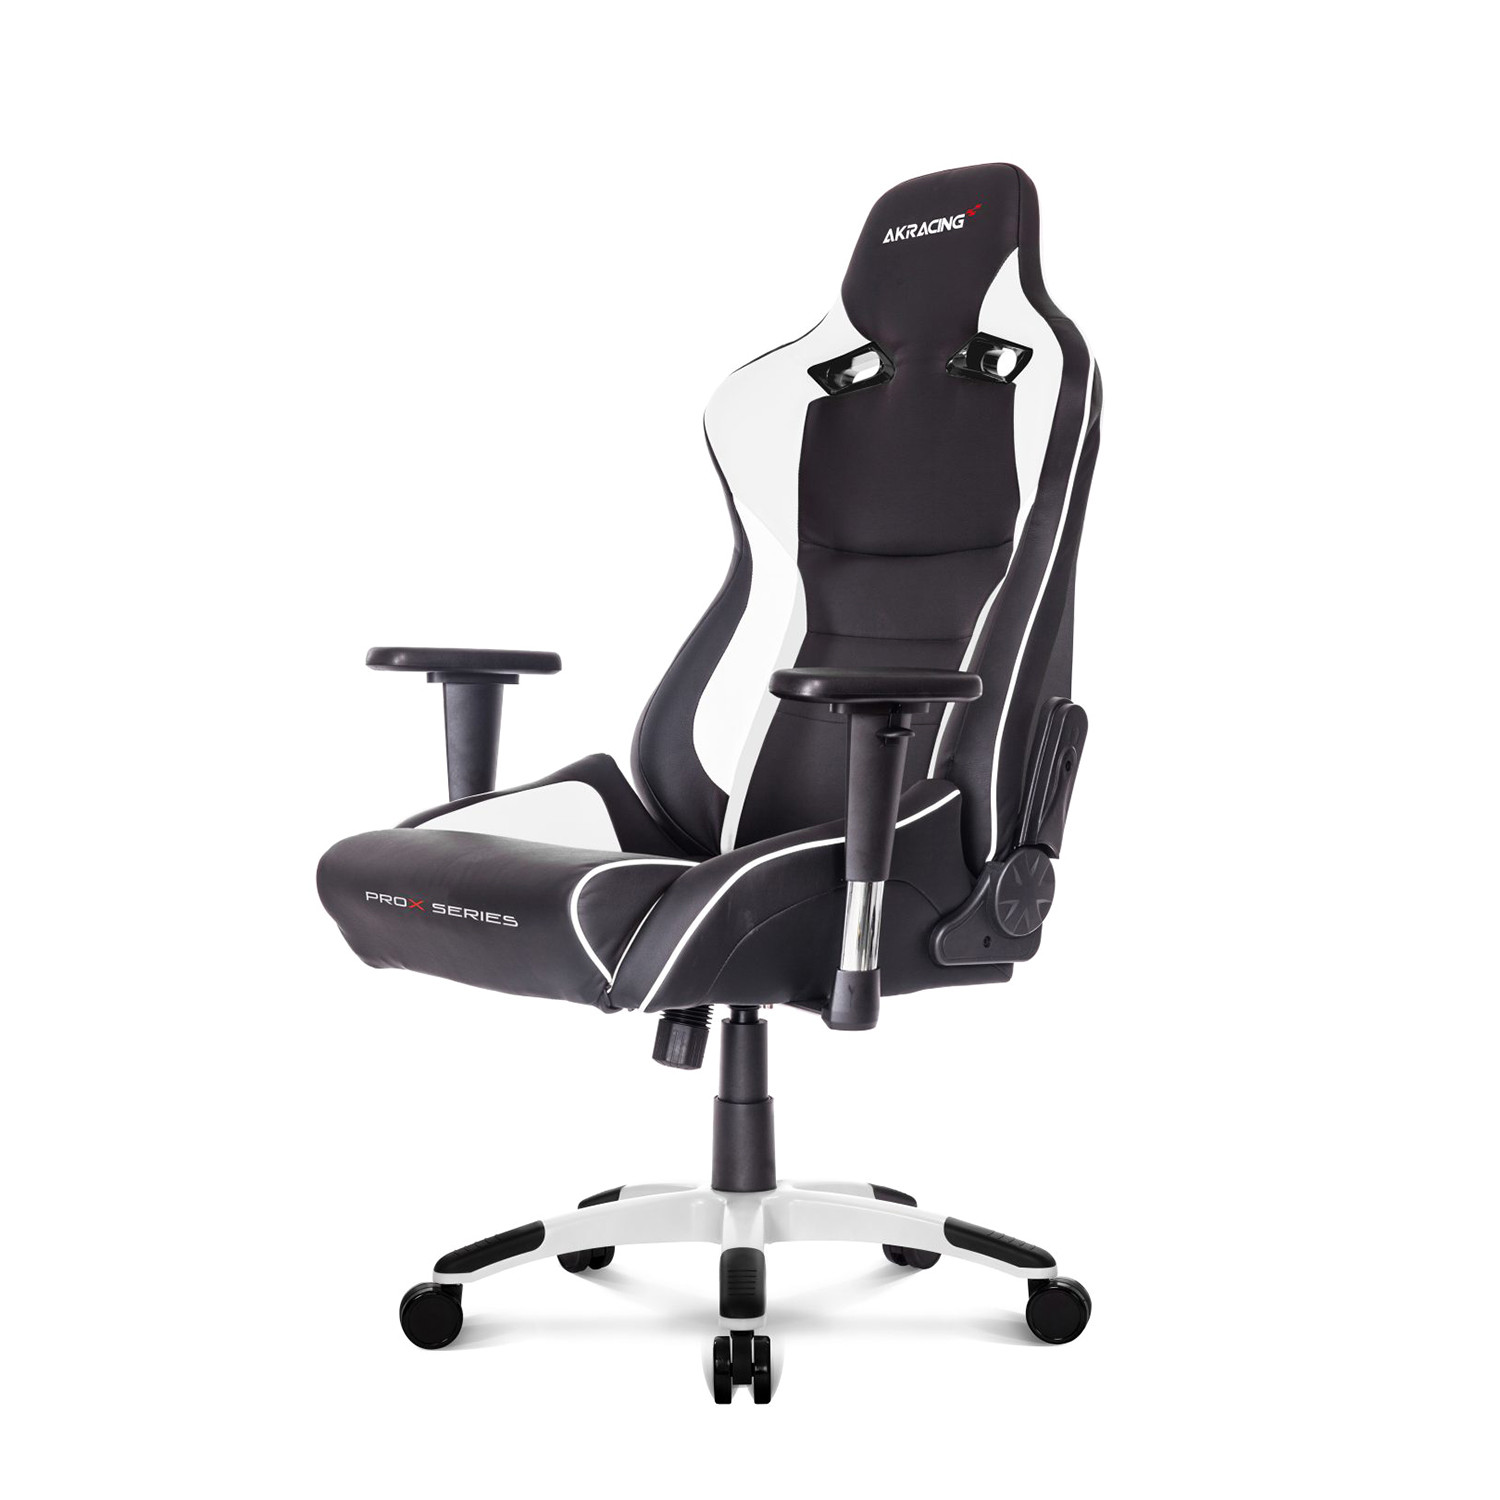 ak racer gaming chair homesense covers pro x series blue racing touch of modern